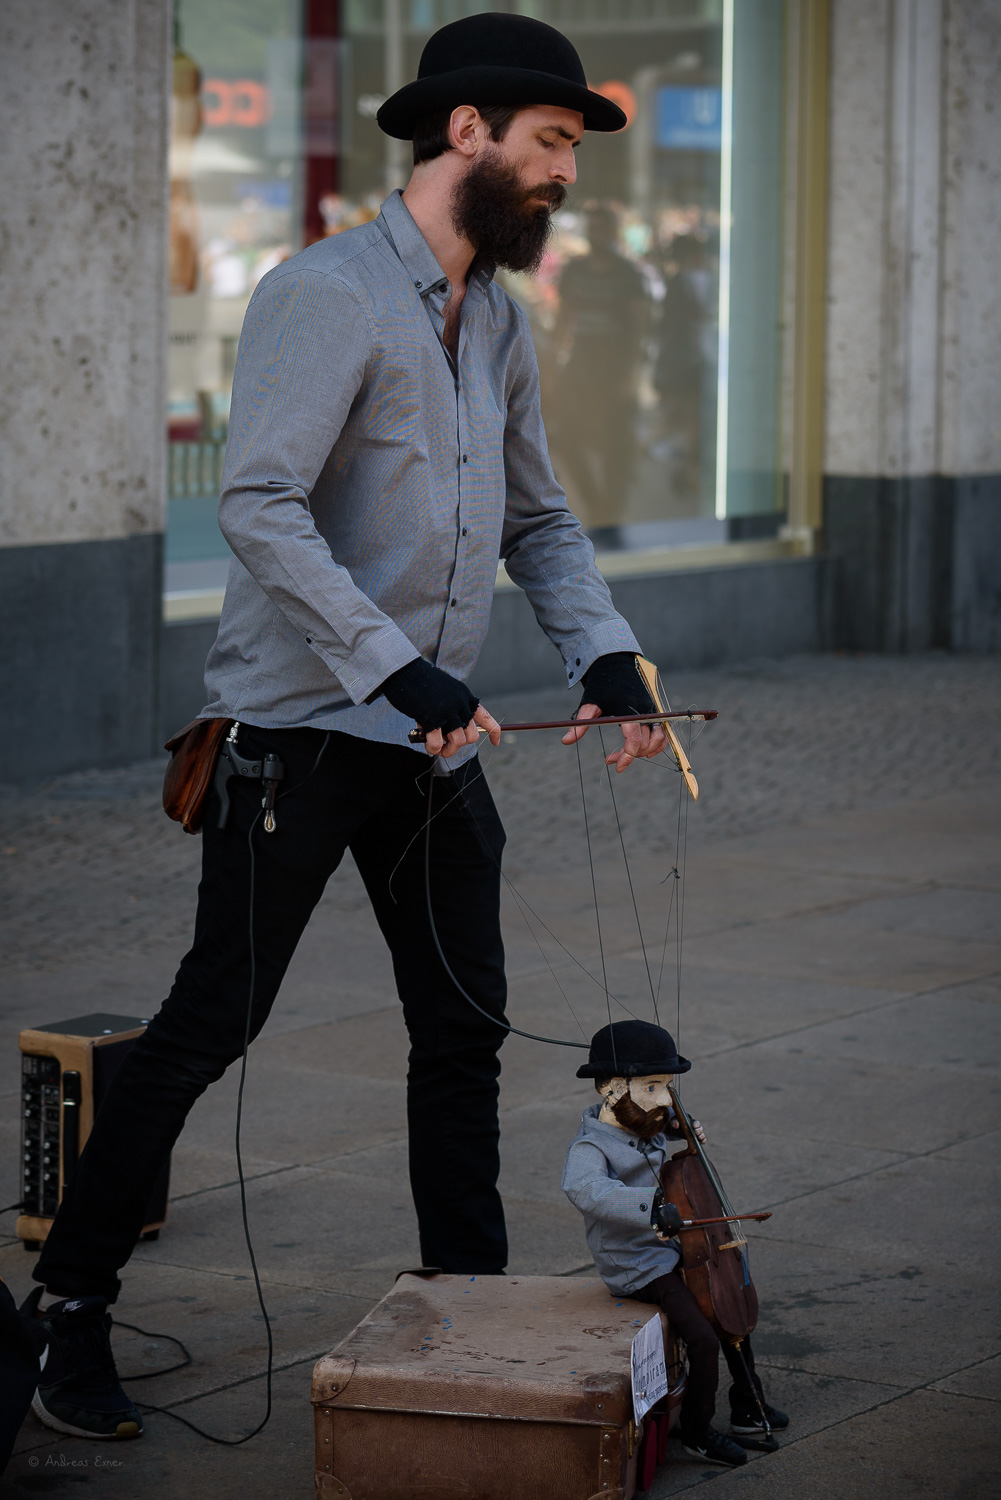 Street artist, Berlin, Alexanderplatz, Germany